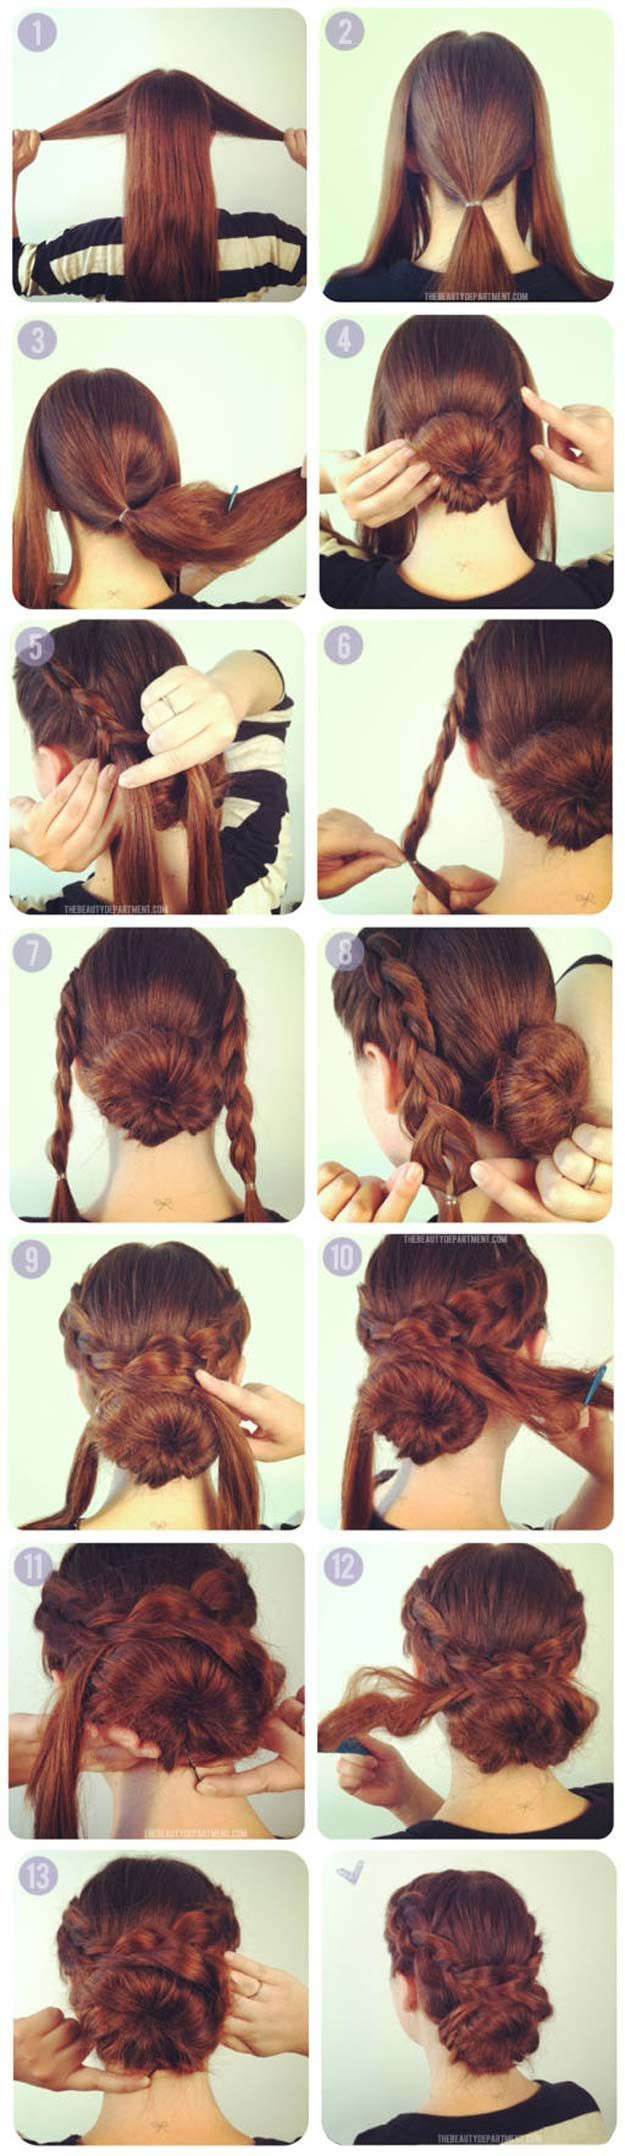 Best Hairstyles for Long Hair - Hot Crossed Bun - Step by Step Tutorials for Eas...